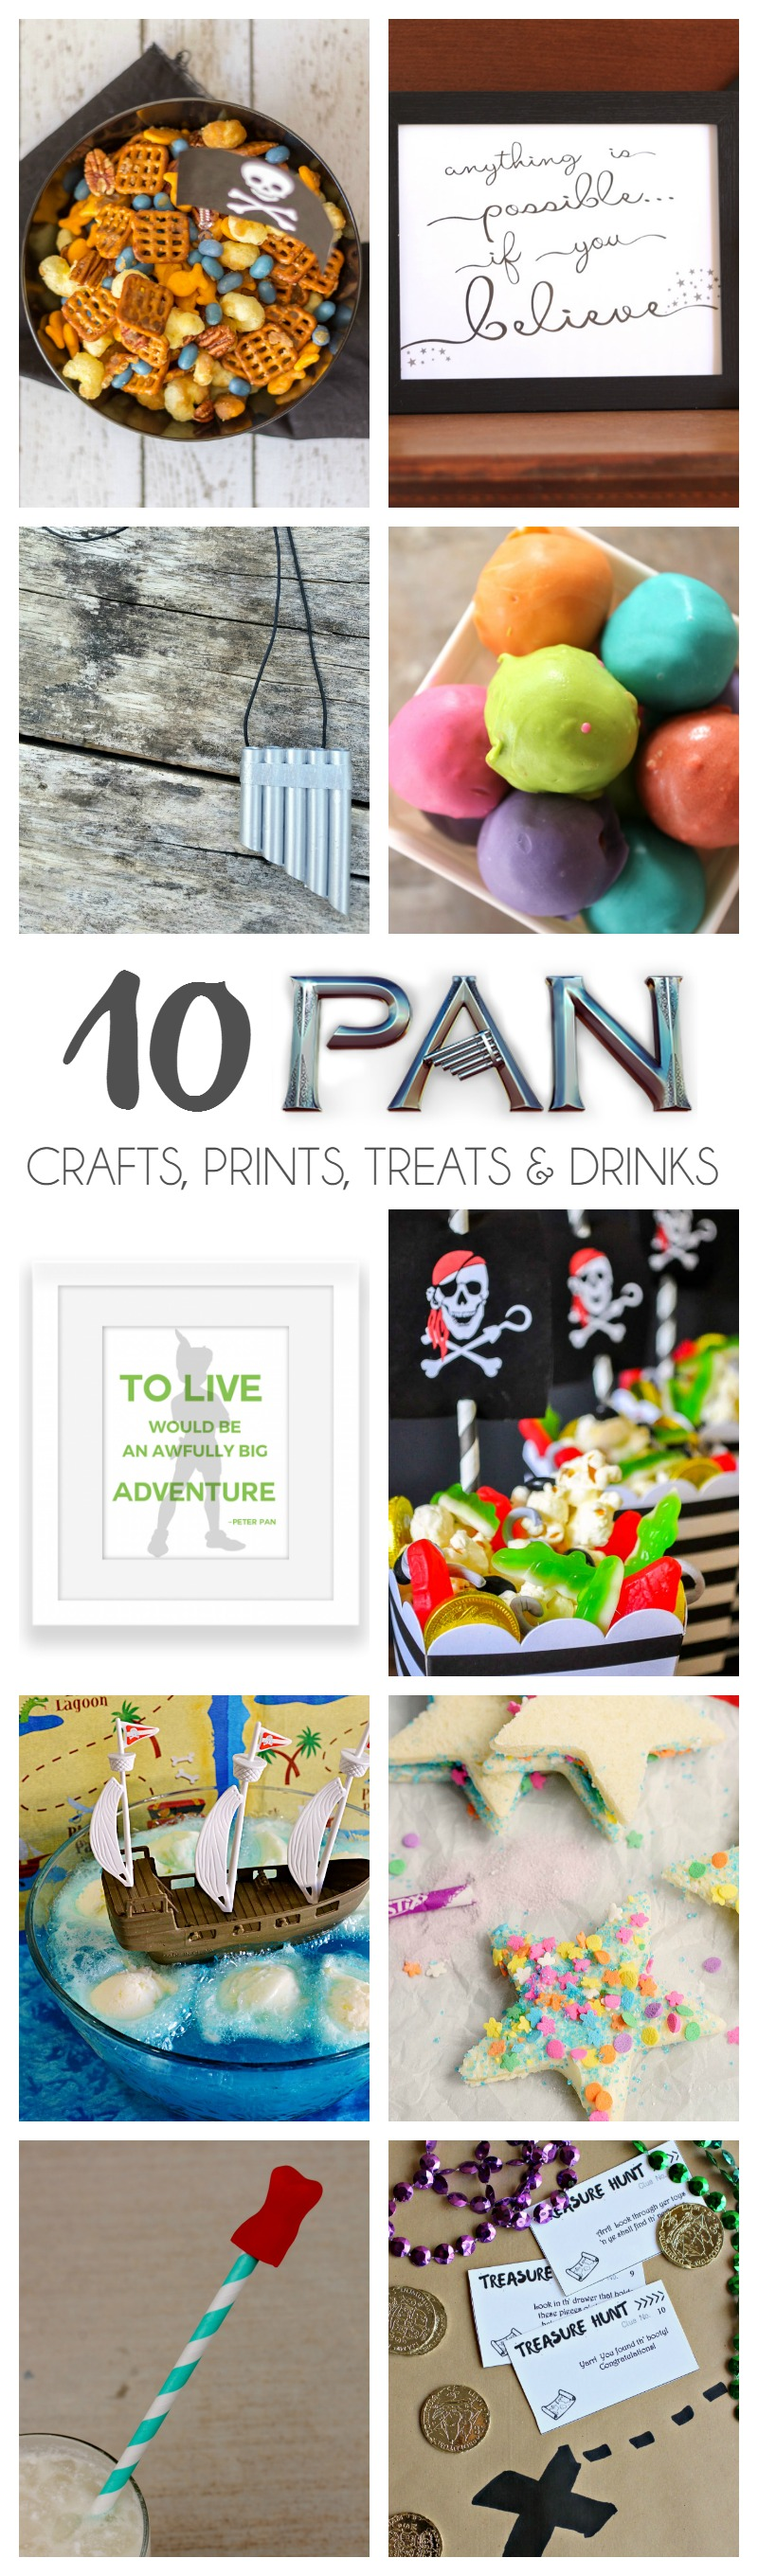 10 Pan Crafts, Prints, Treats & Drinks